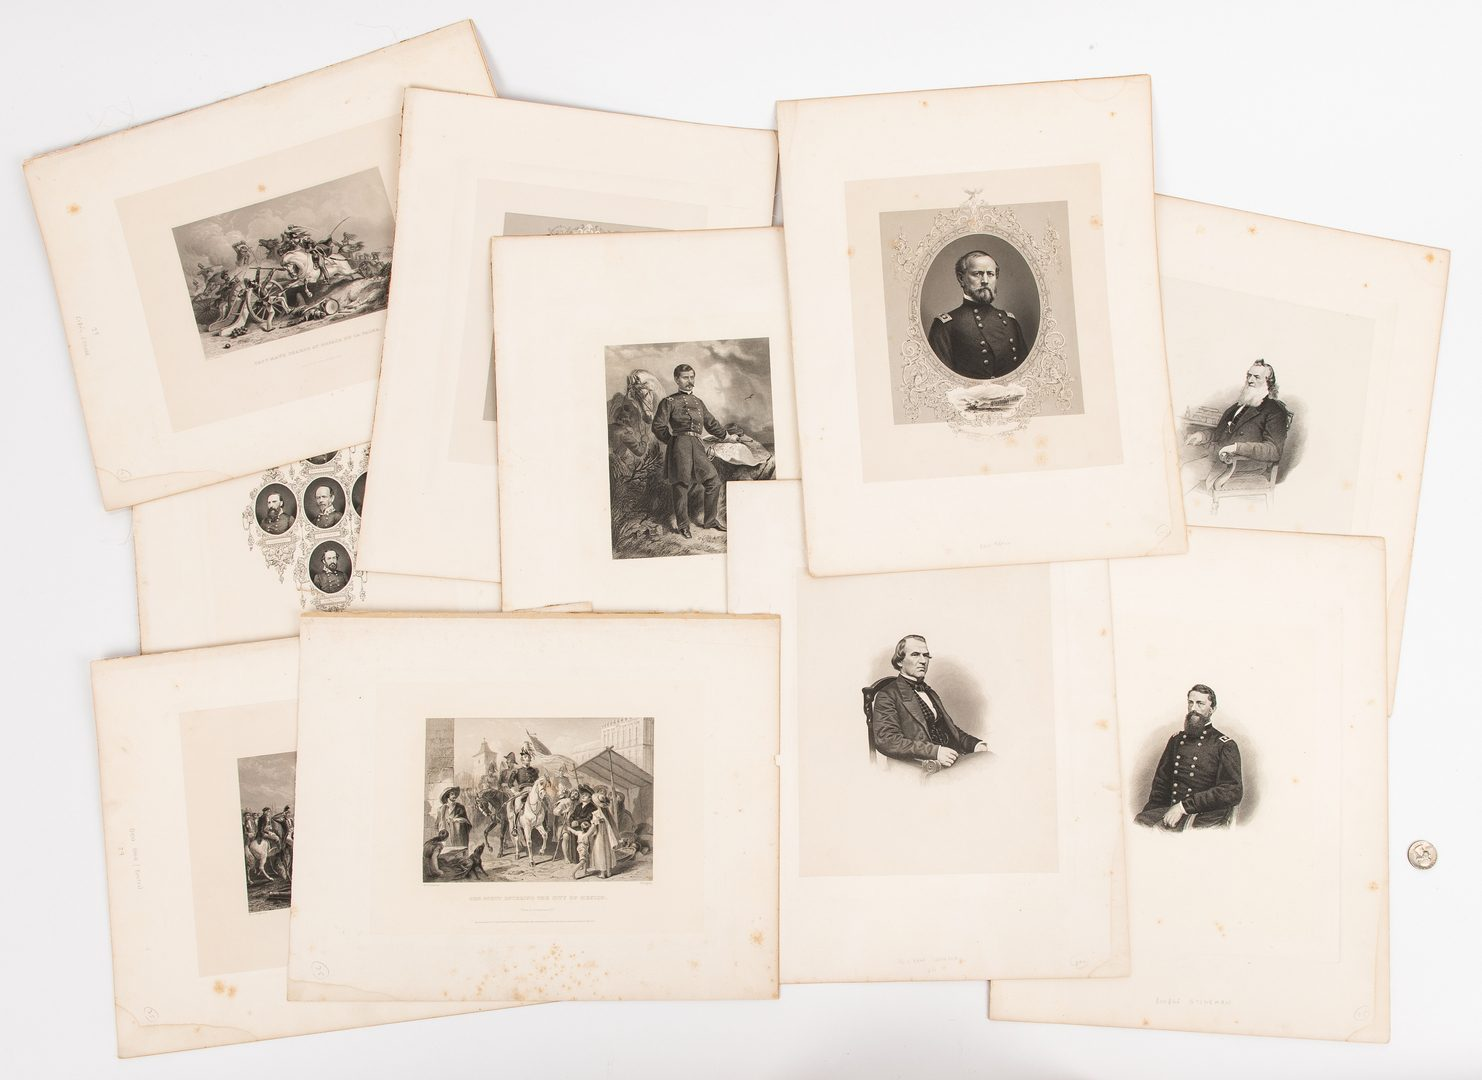 Lot 389: 27 American Statesmen and Generals Engravings, 1866